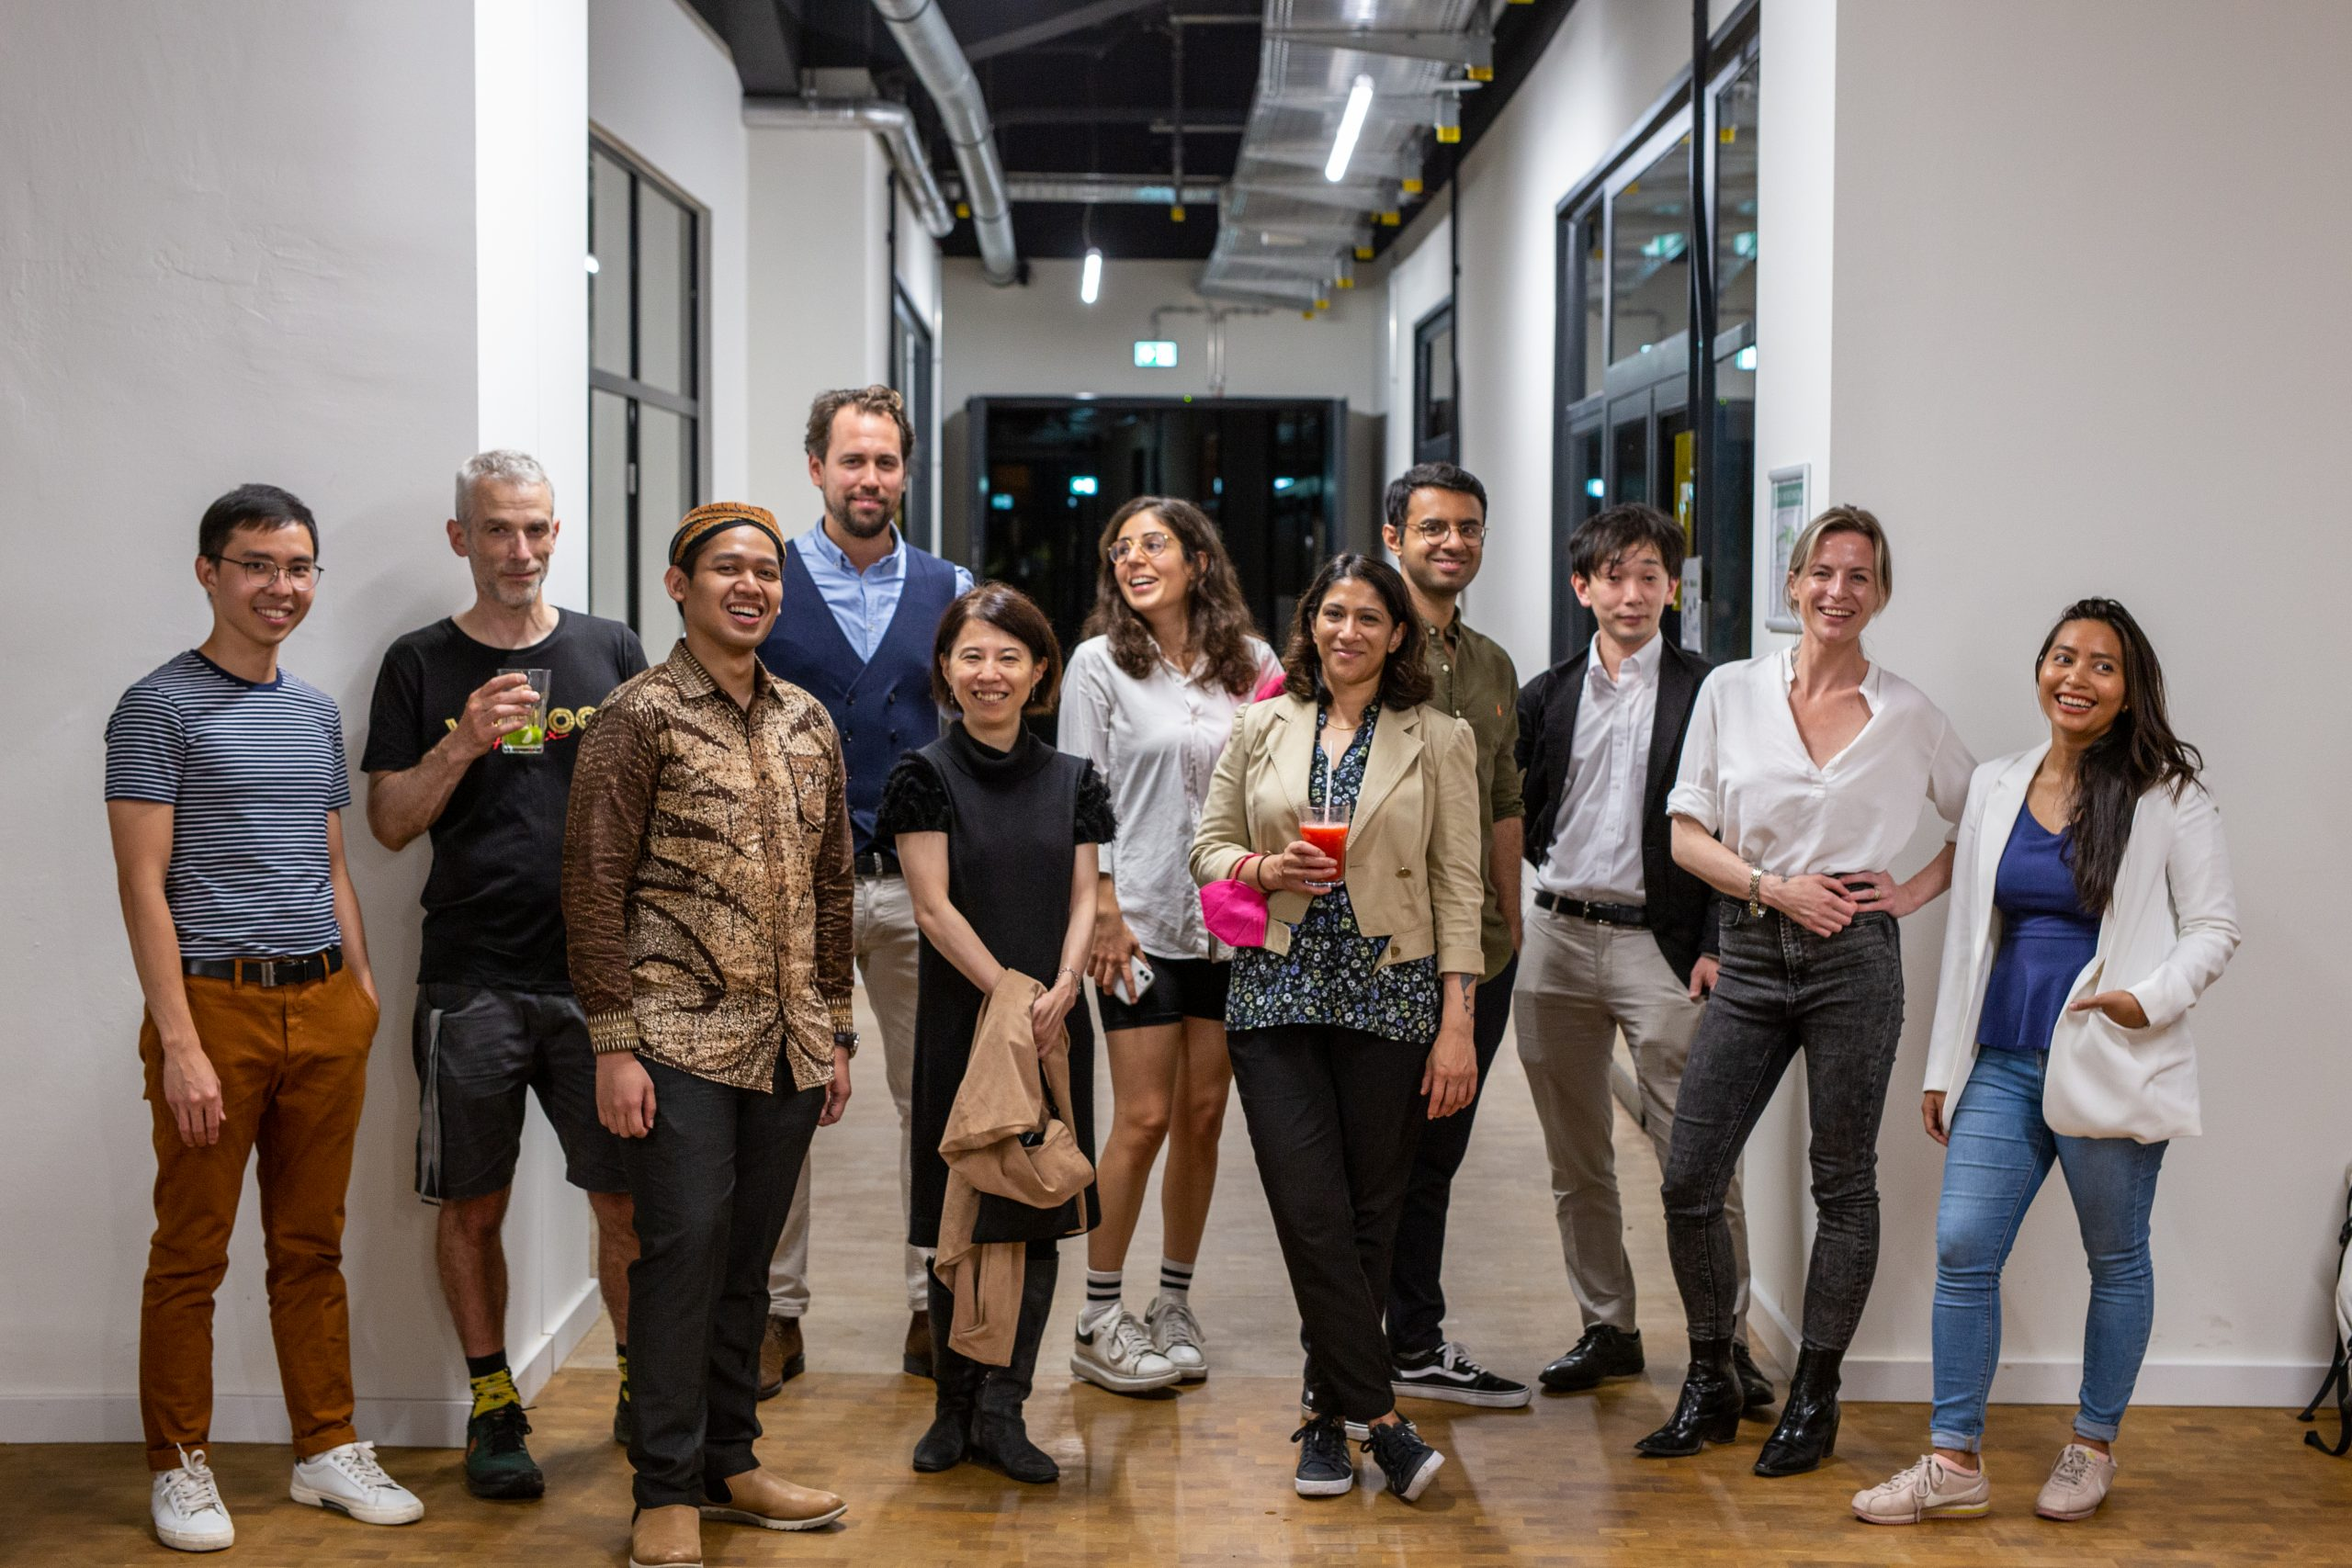 AsiaBerlin Event Highlights : Climb the Summit – AsiaBerlin networking for startups that aim high